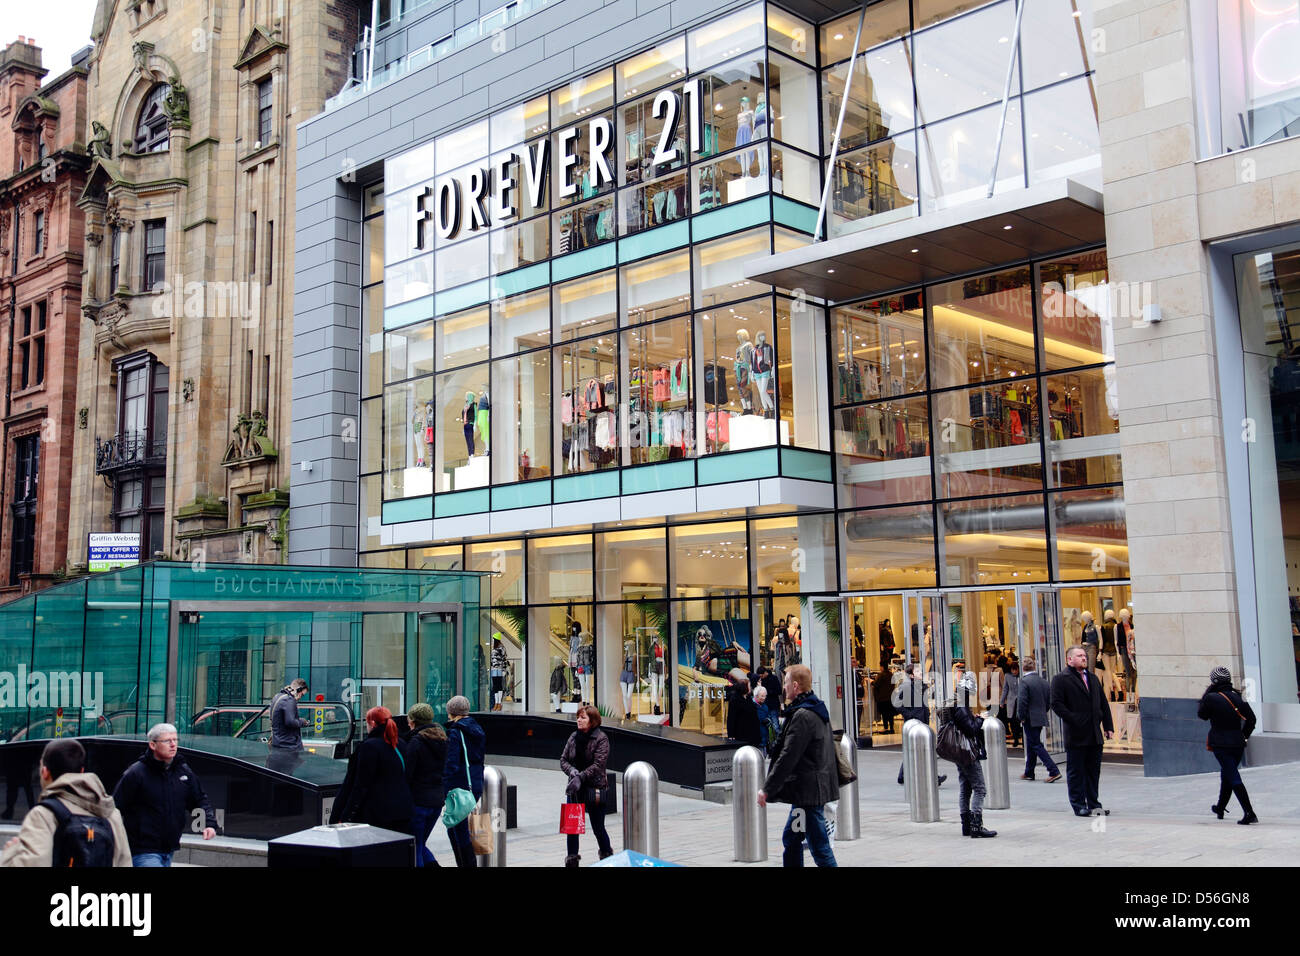 A  Forever 21 shop, now closed, on Buchanan Street in Glasgow city centre, Scotland, UK - Stock Image